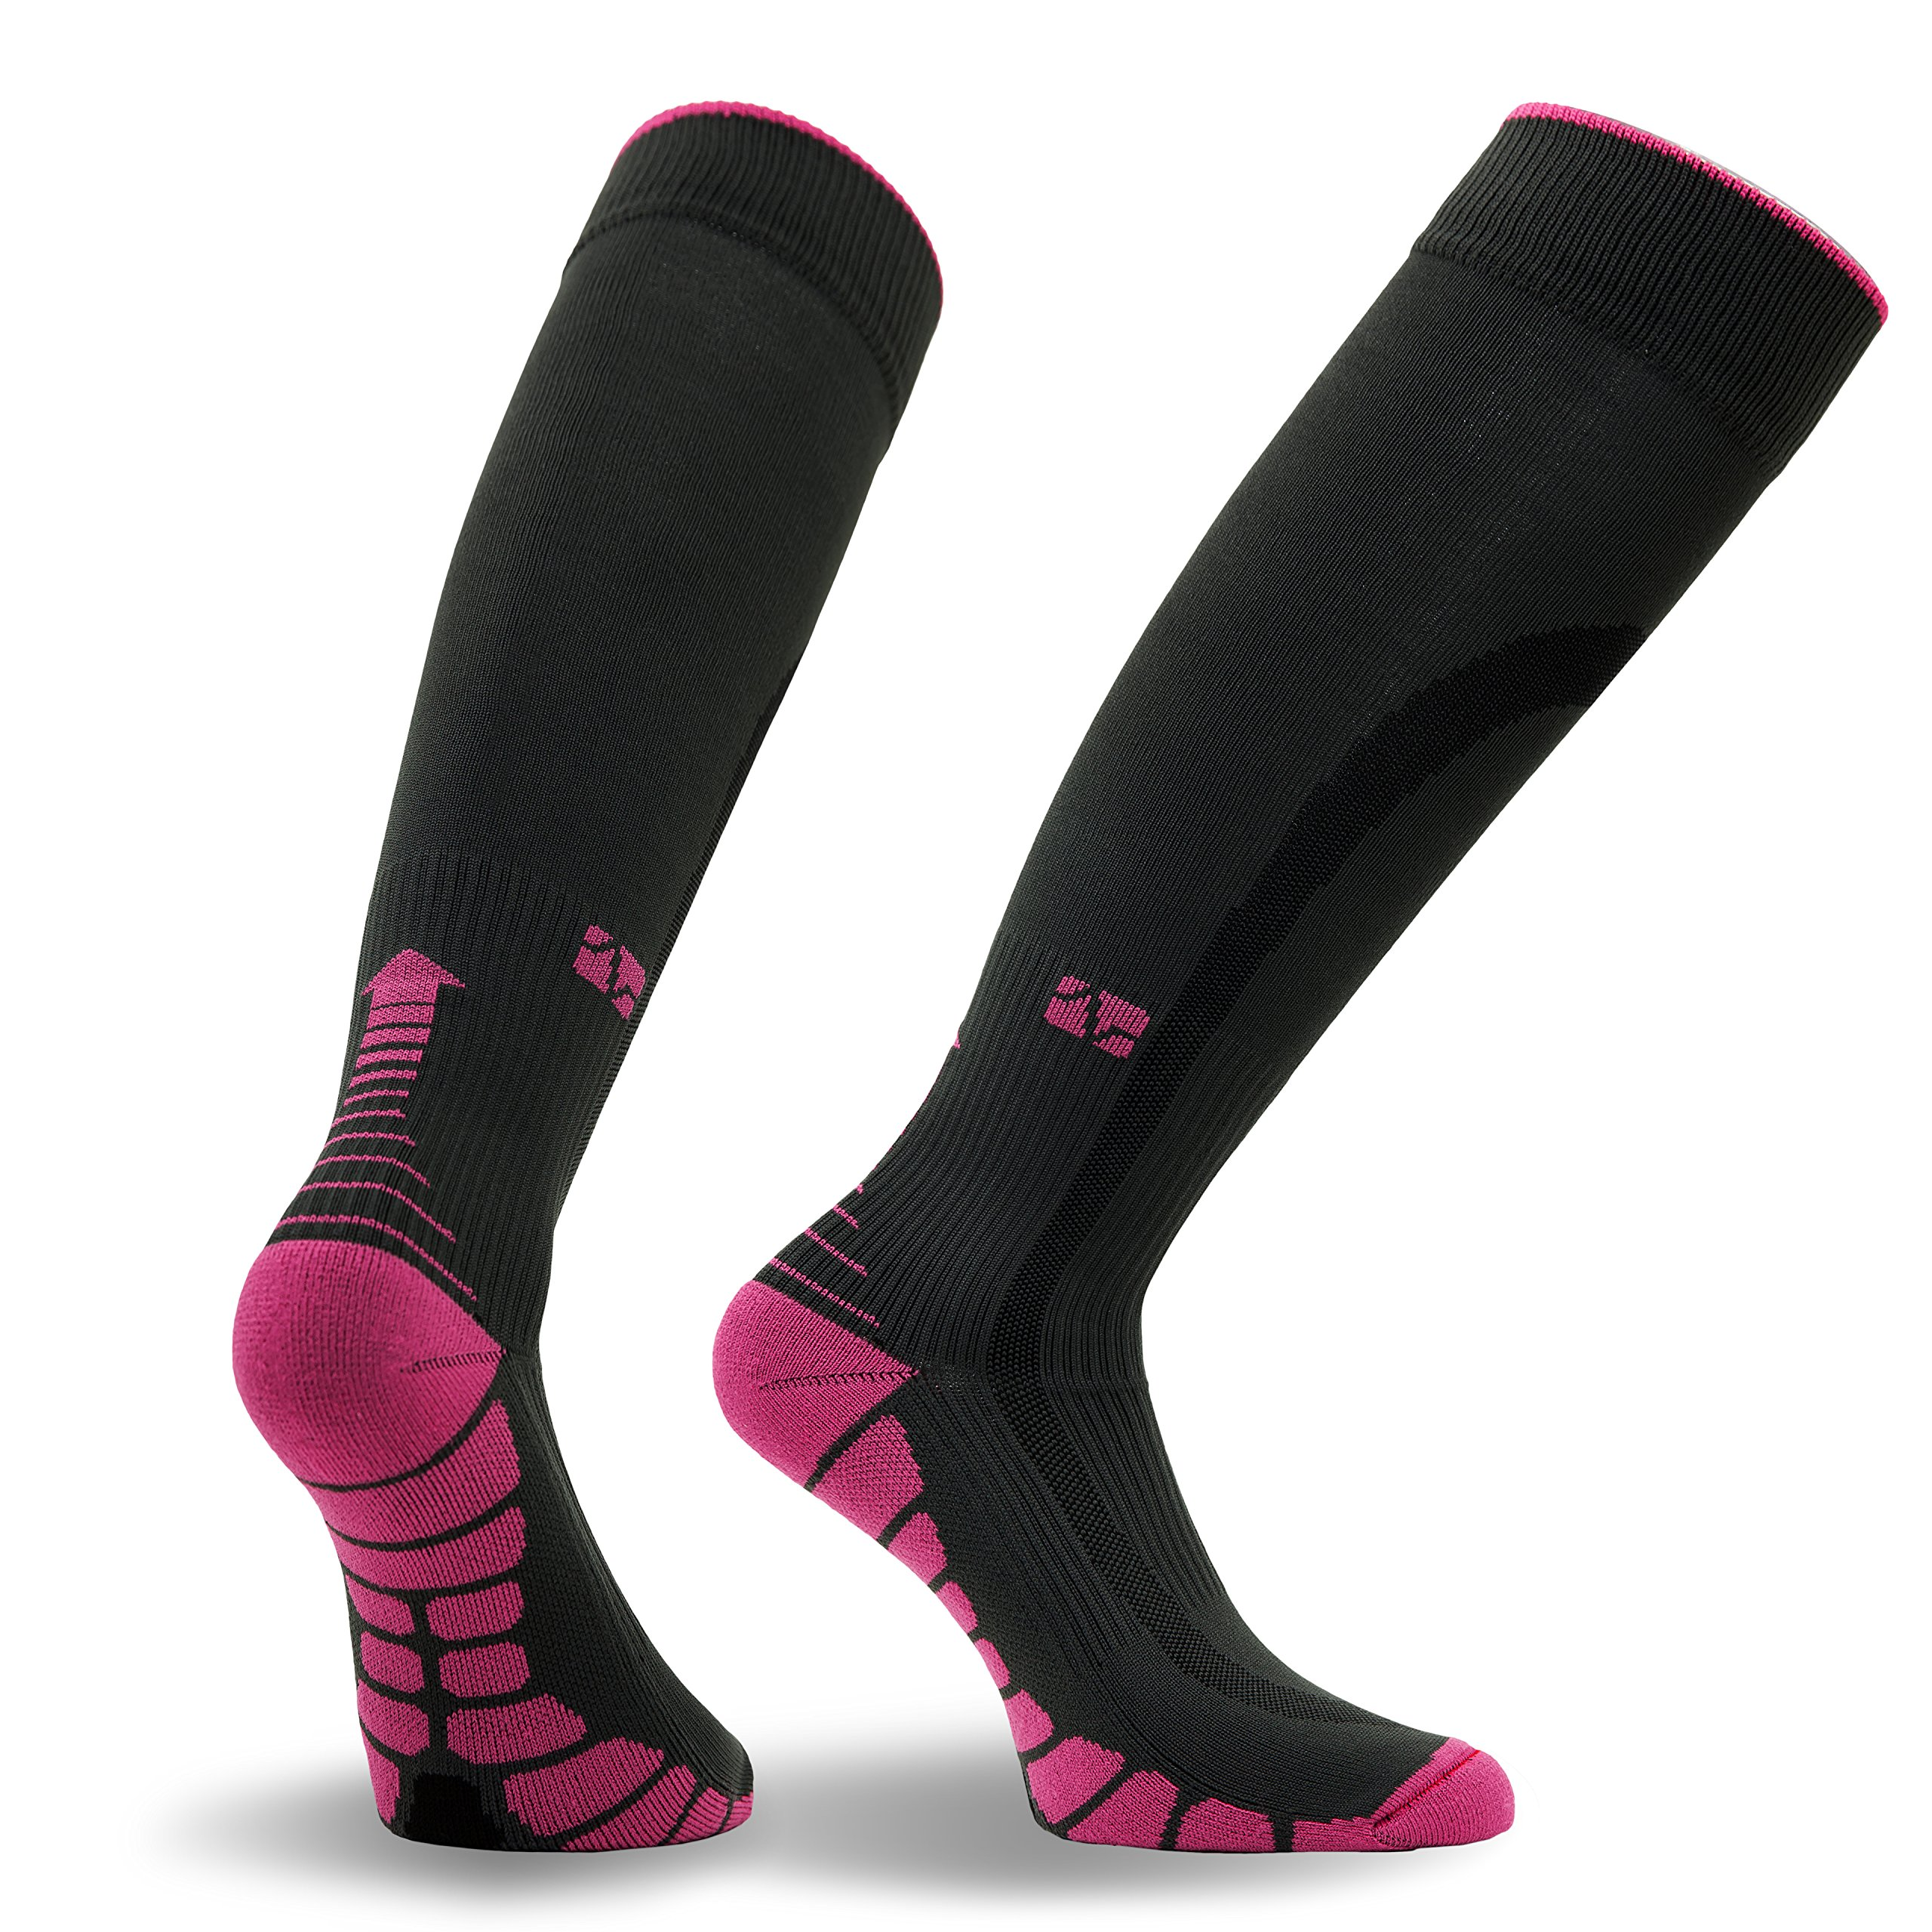 Vitalsox Patented Graduated Compression Socks, Carbon/Pink, Medium by Vitalsox